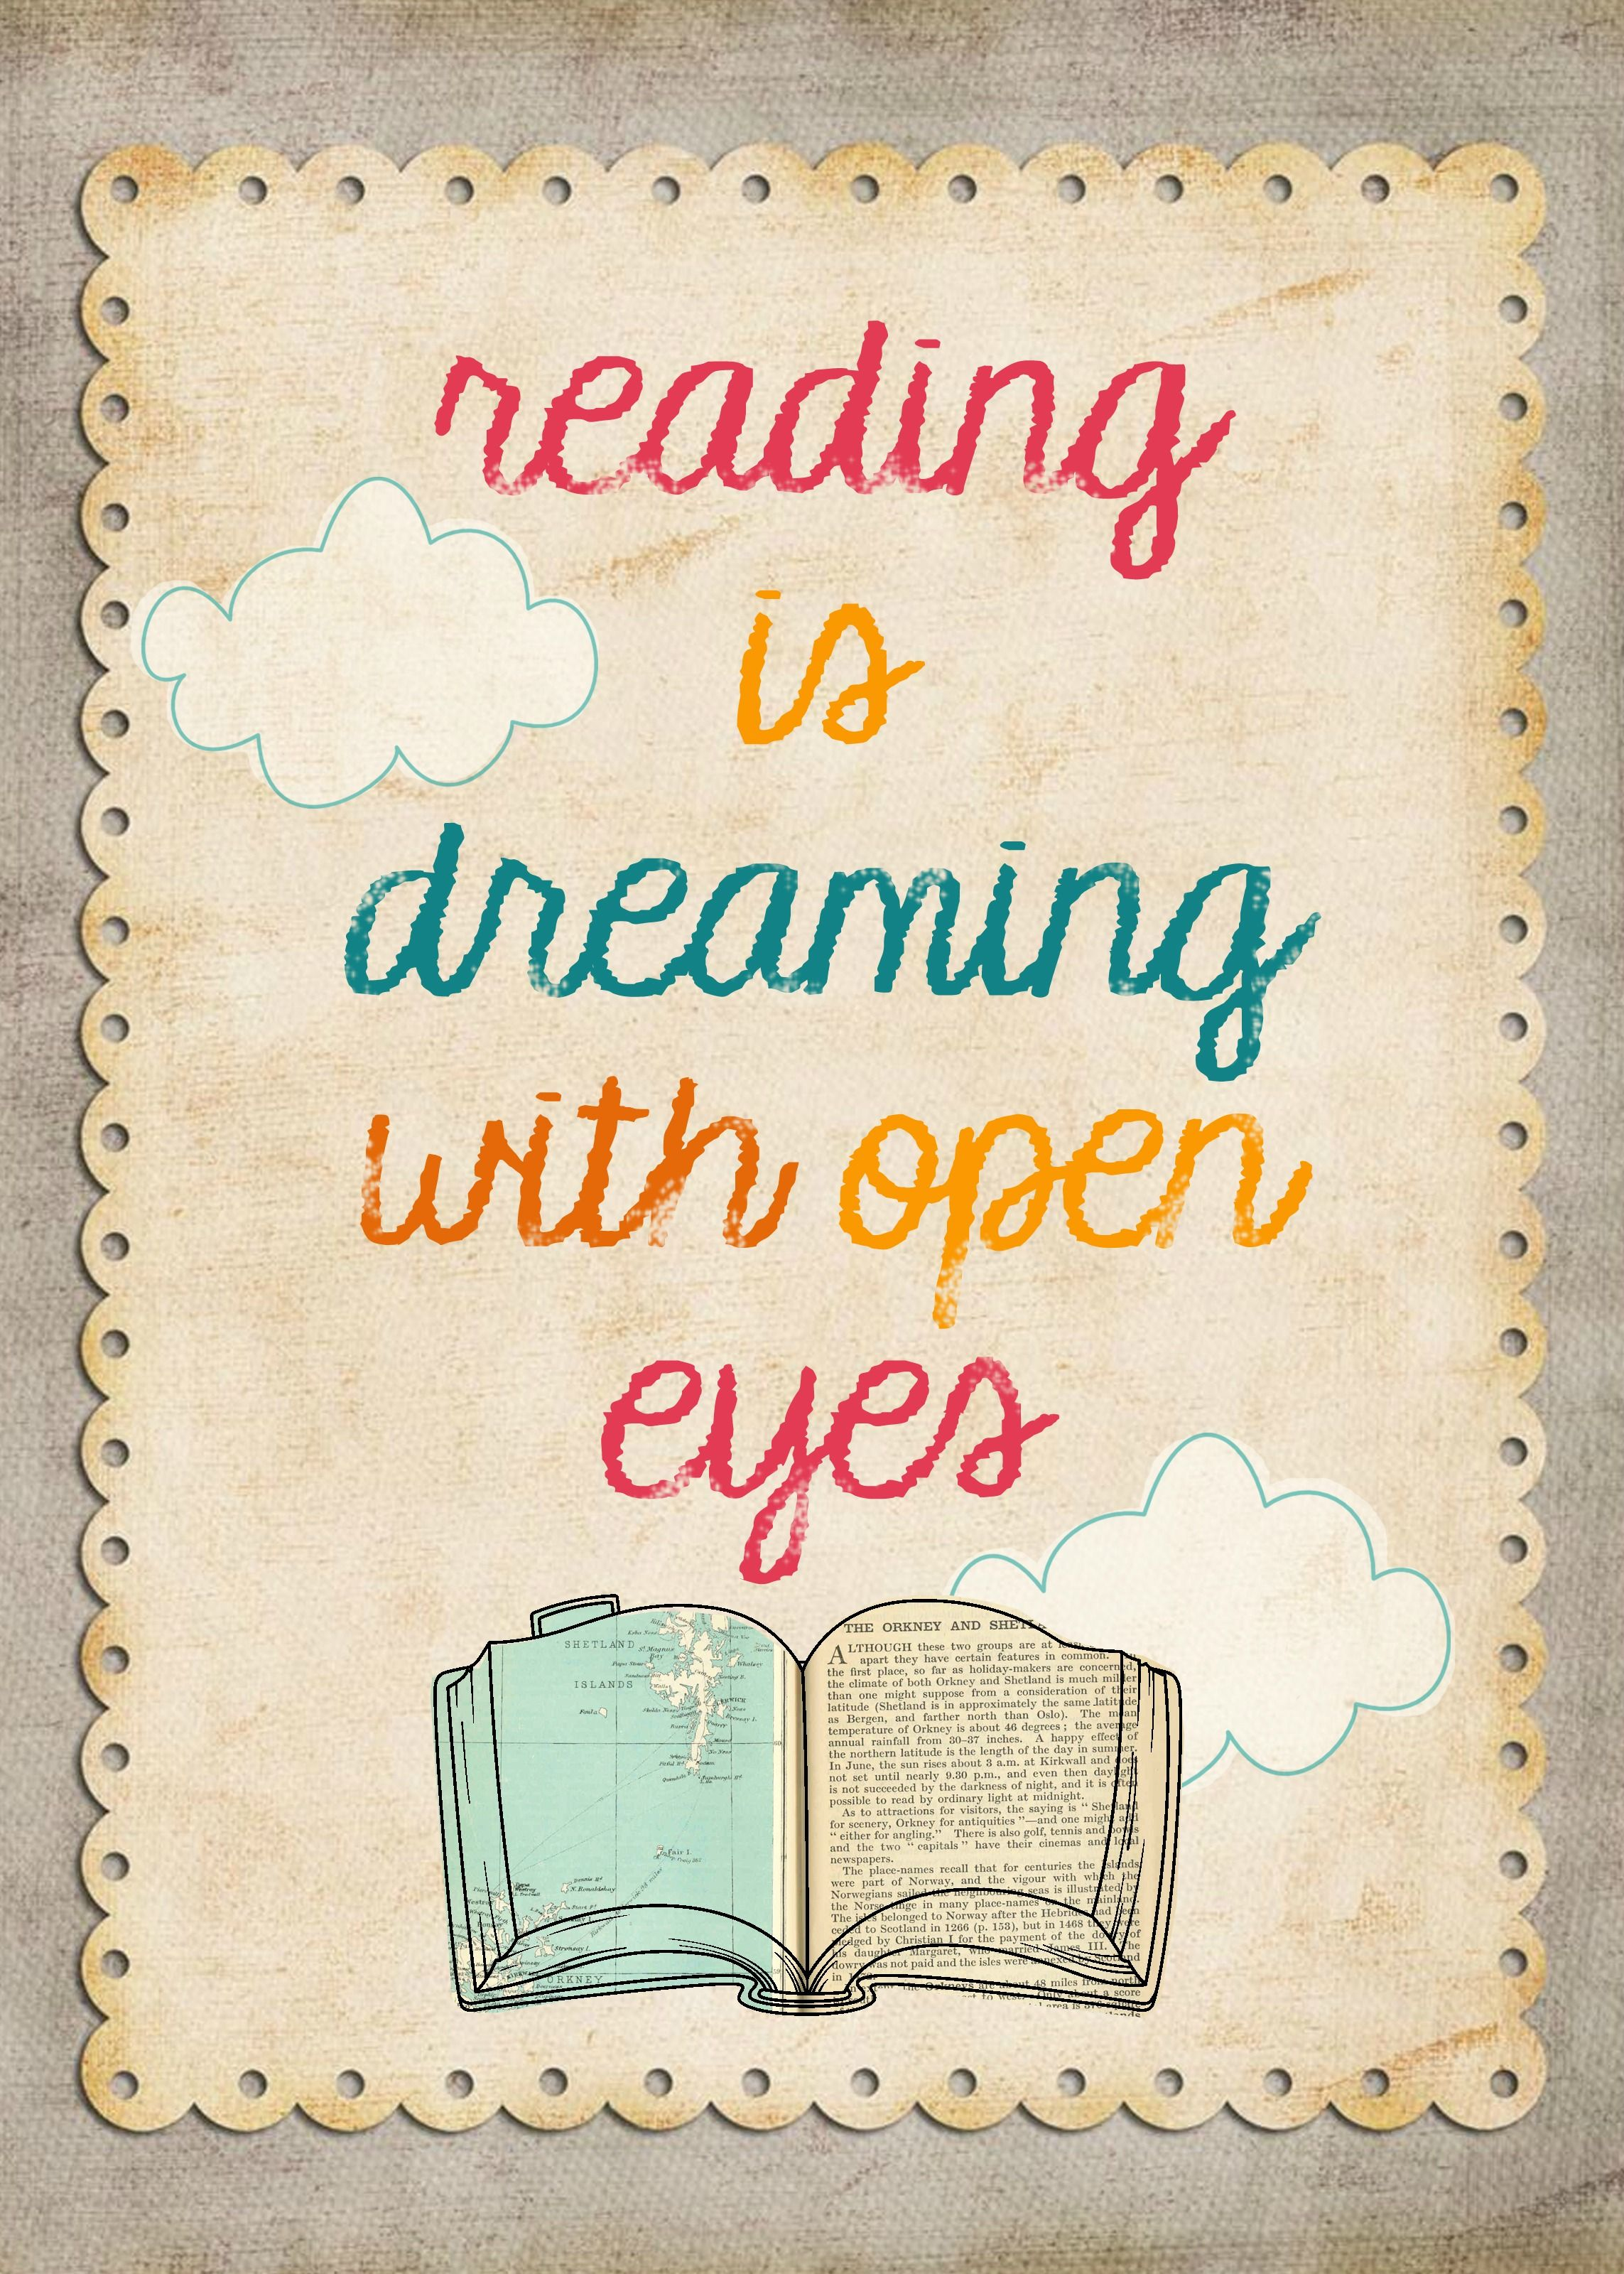 Cool Book Cover Quote ~ Free reading artwork from books and